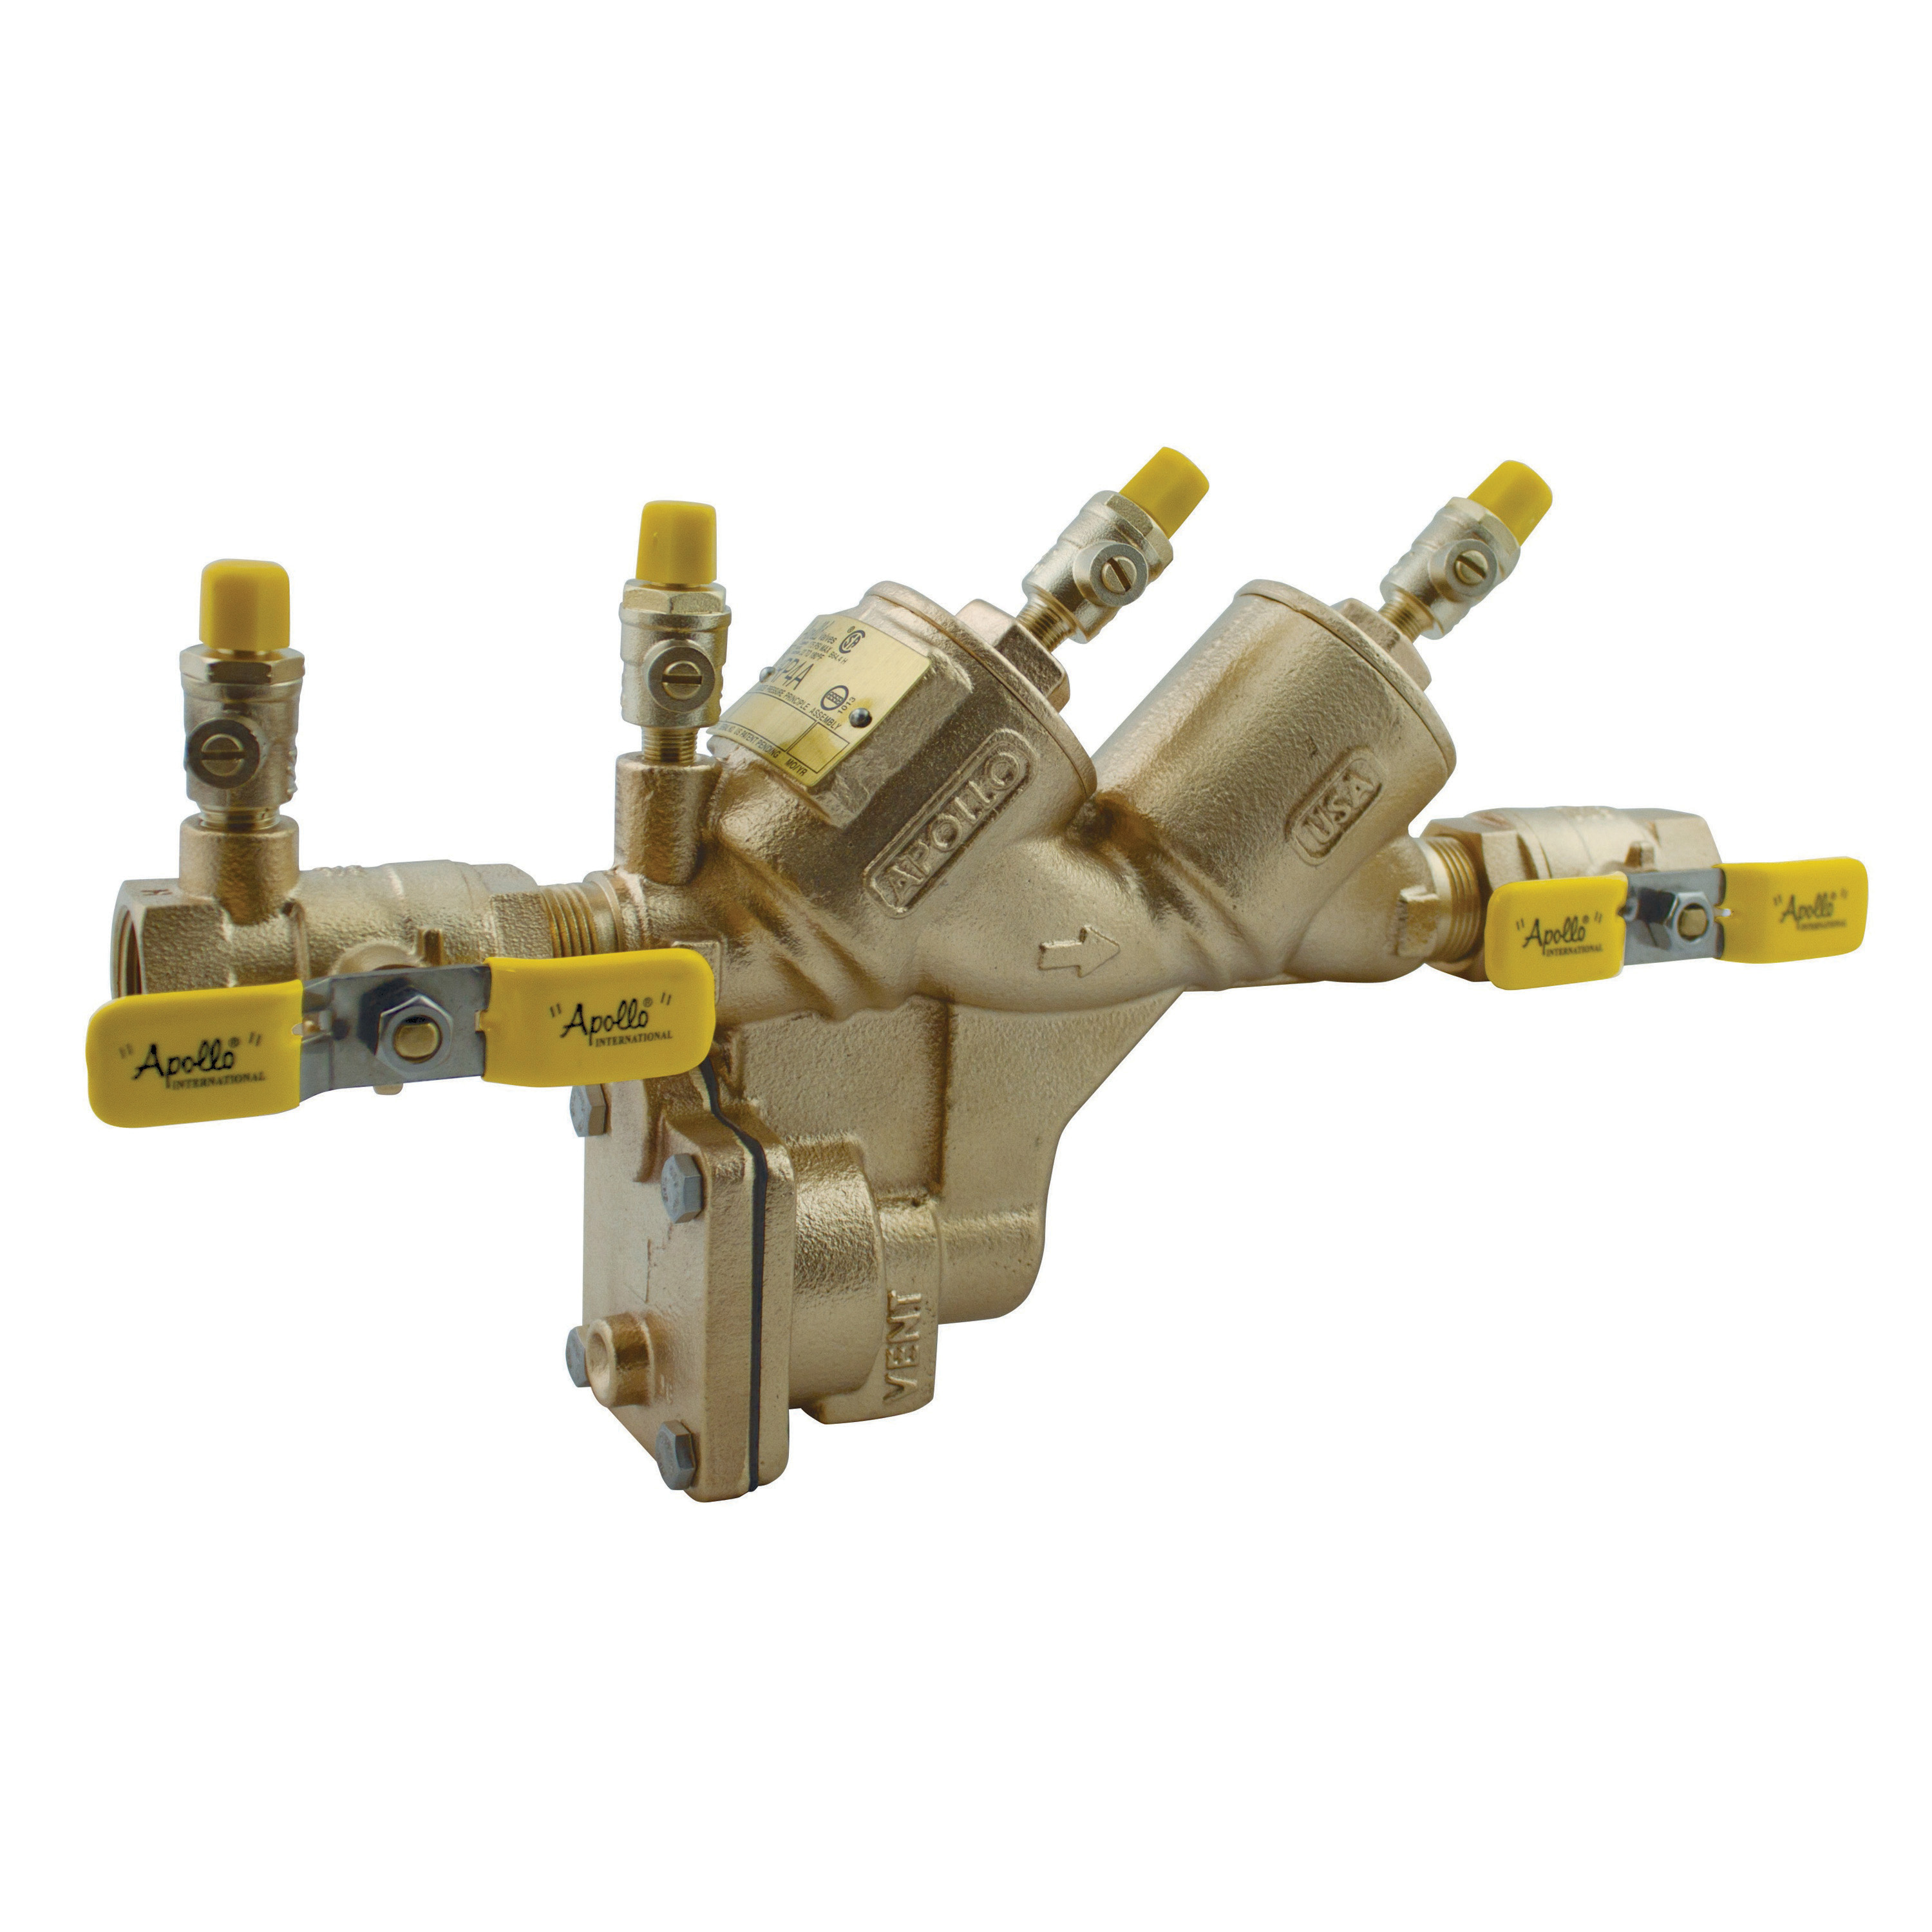 Apollo 4ALF204A2F RPLF4A Standard Backflow Preventer, '3/4, Shut-Off Ball Valve, Bronze Body, Reduced Pressure Backflow